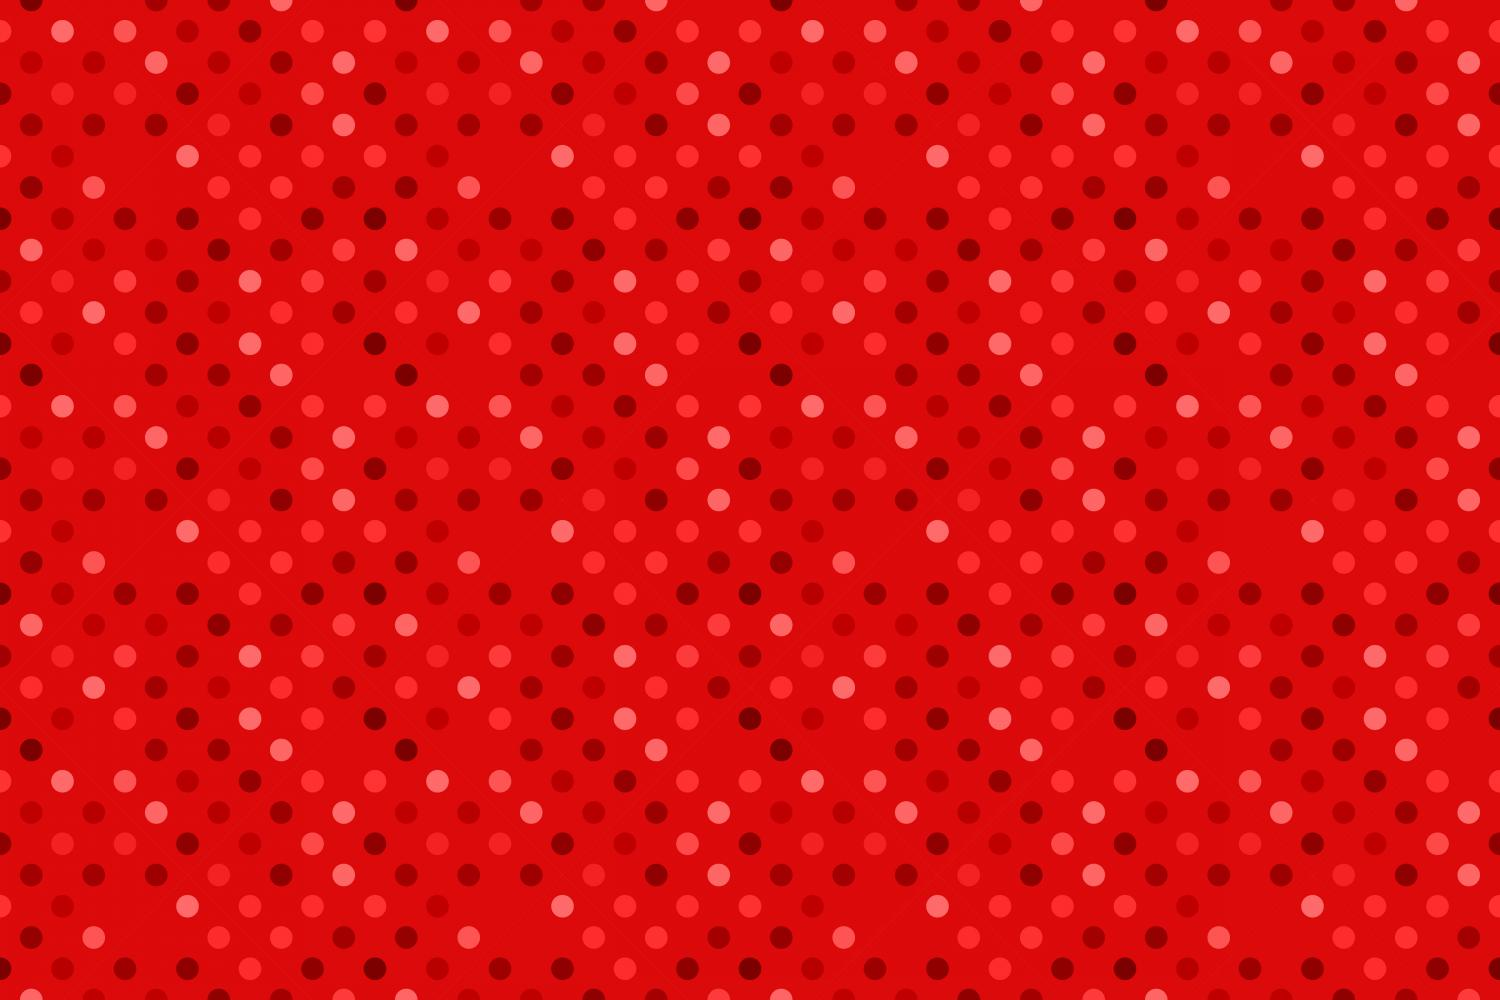 24 Seamless Red Dot Patterns example image 20